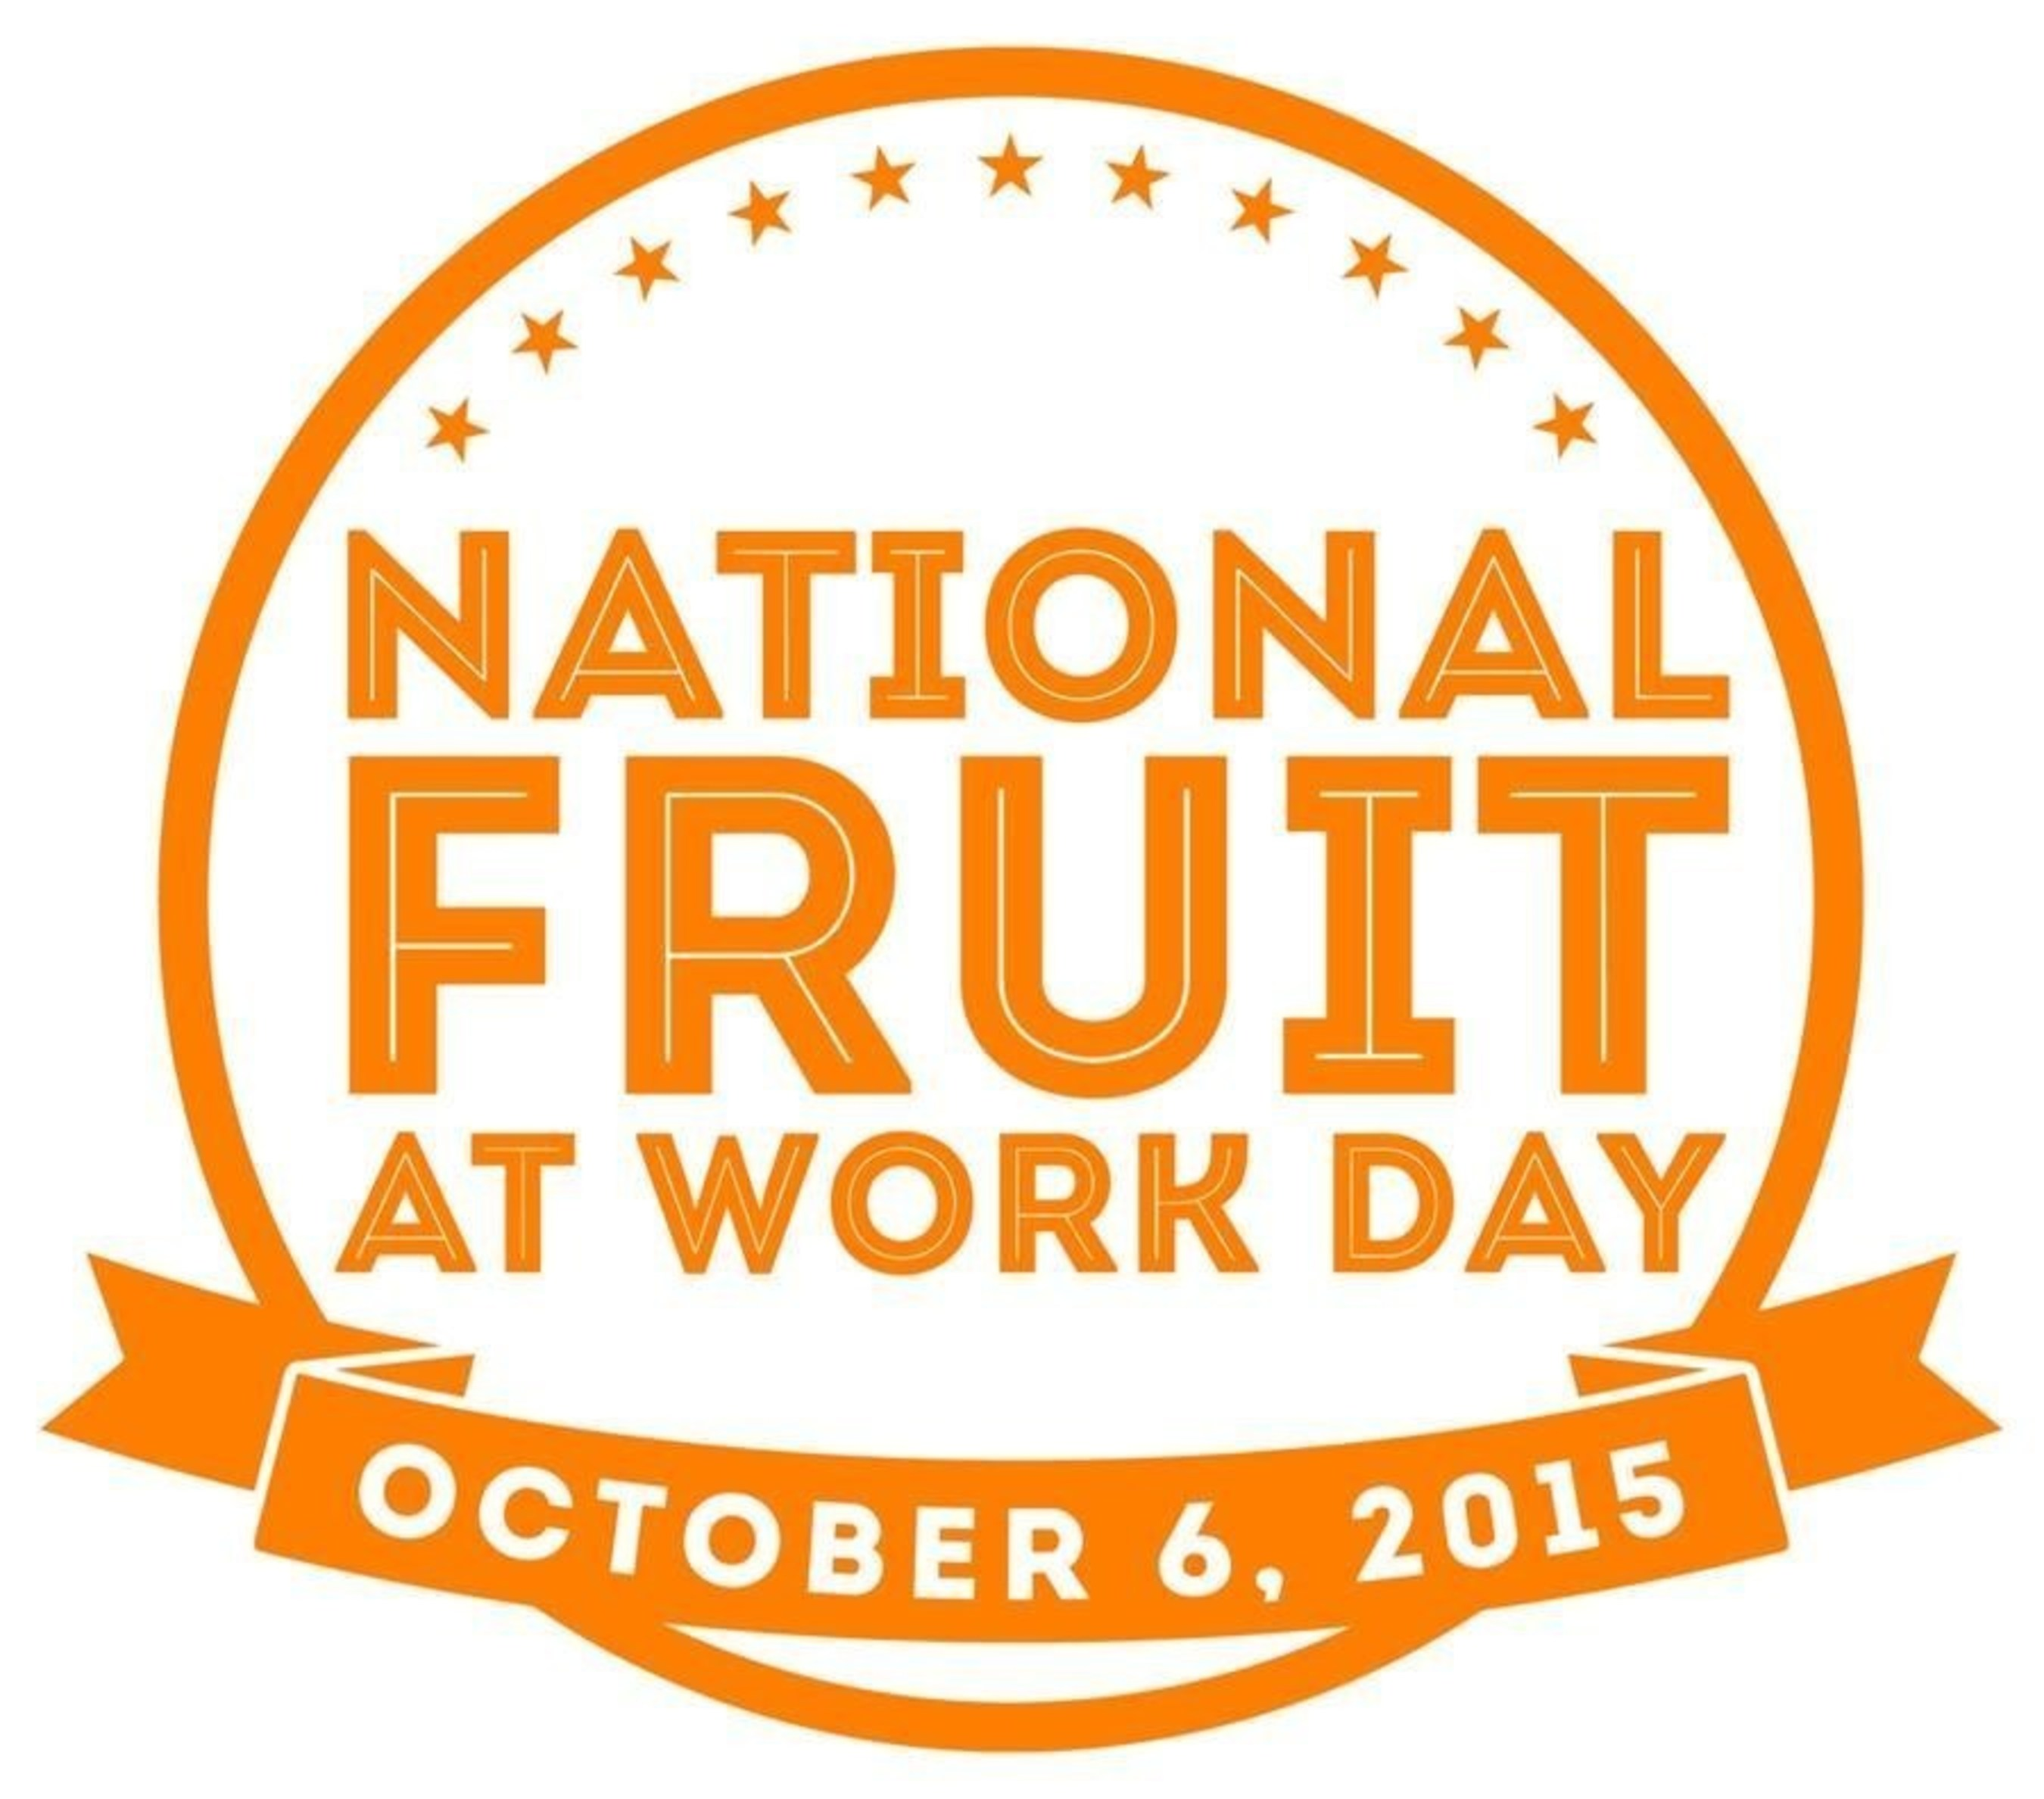 National Fruit at Work Day is October 6, 2015.